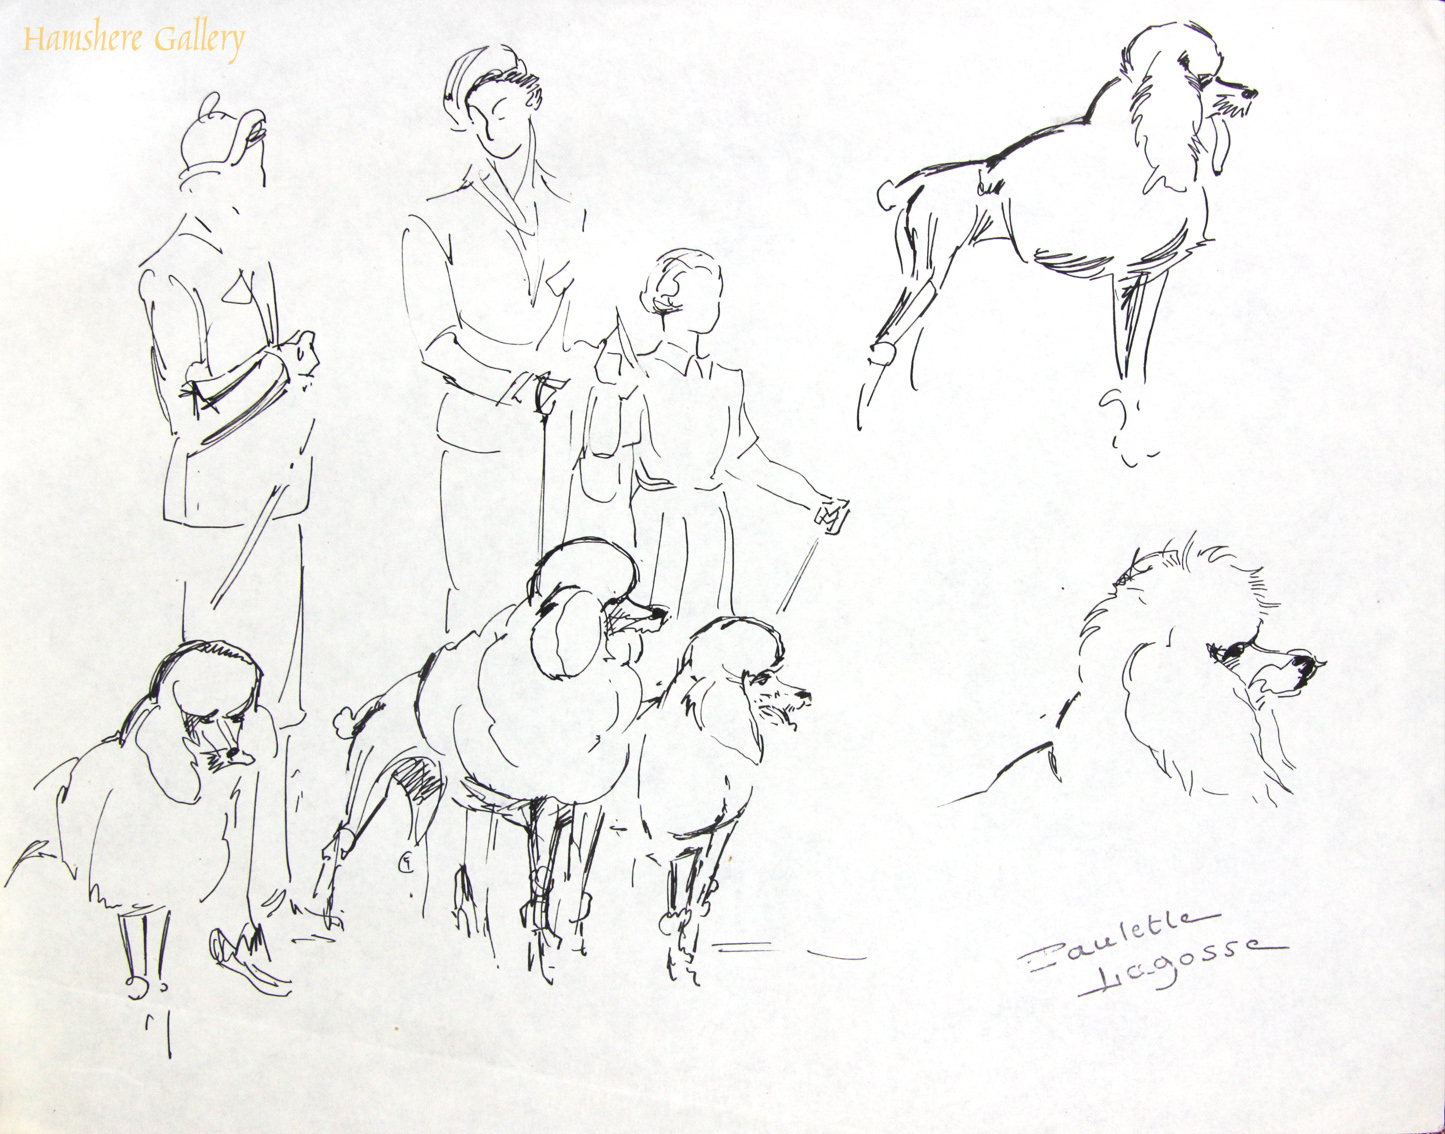 Click to see full size: Pen and ink with watercolour Poodle drawings by Marie-Paulette Lagosse (French, 1921-1996)